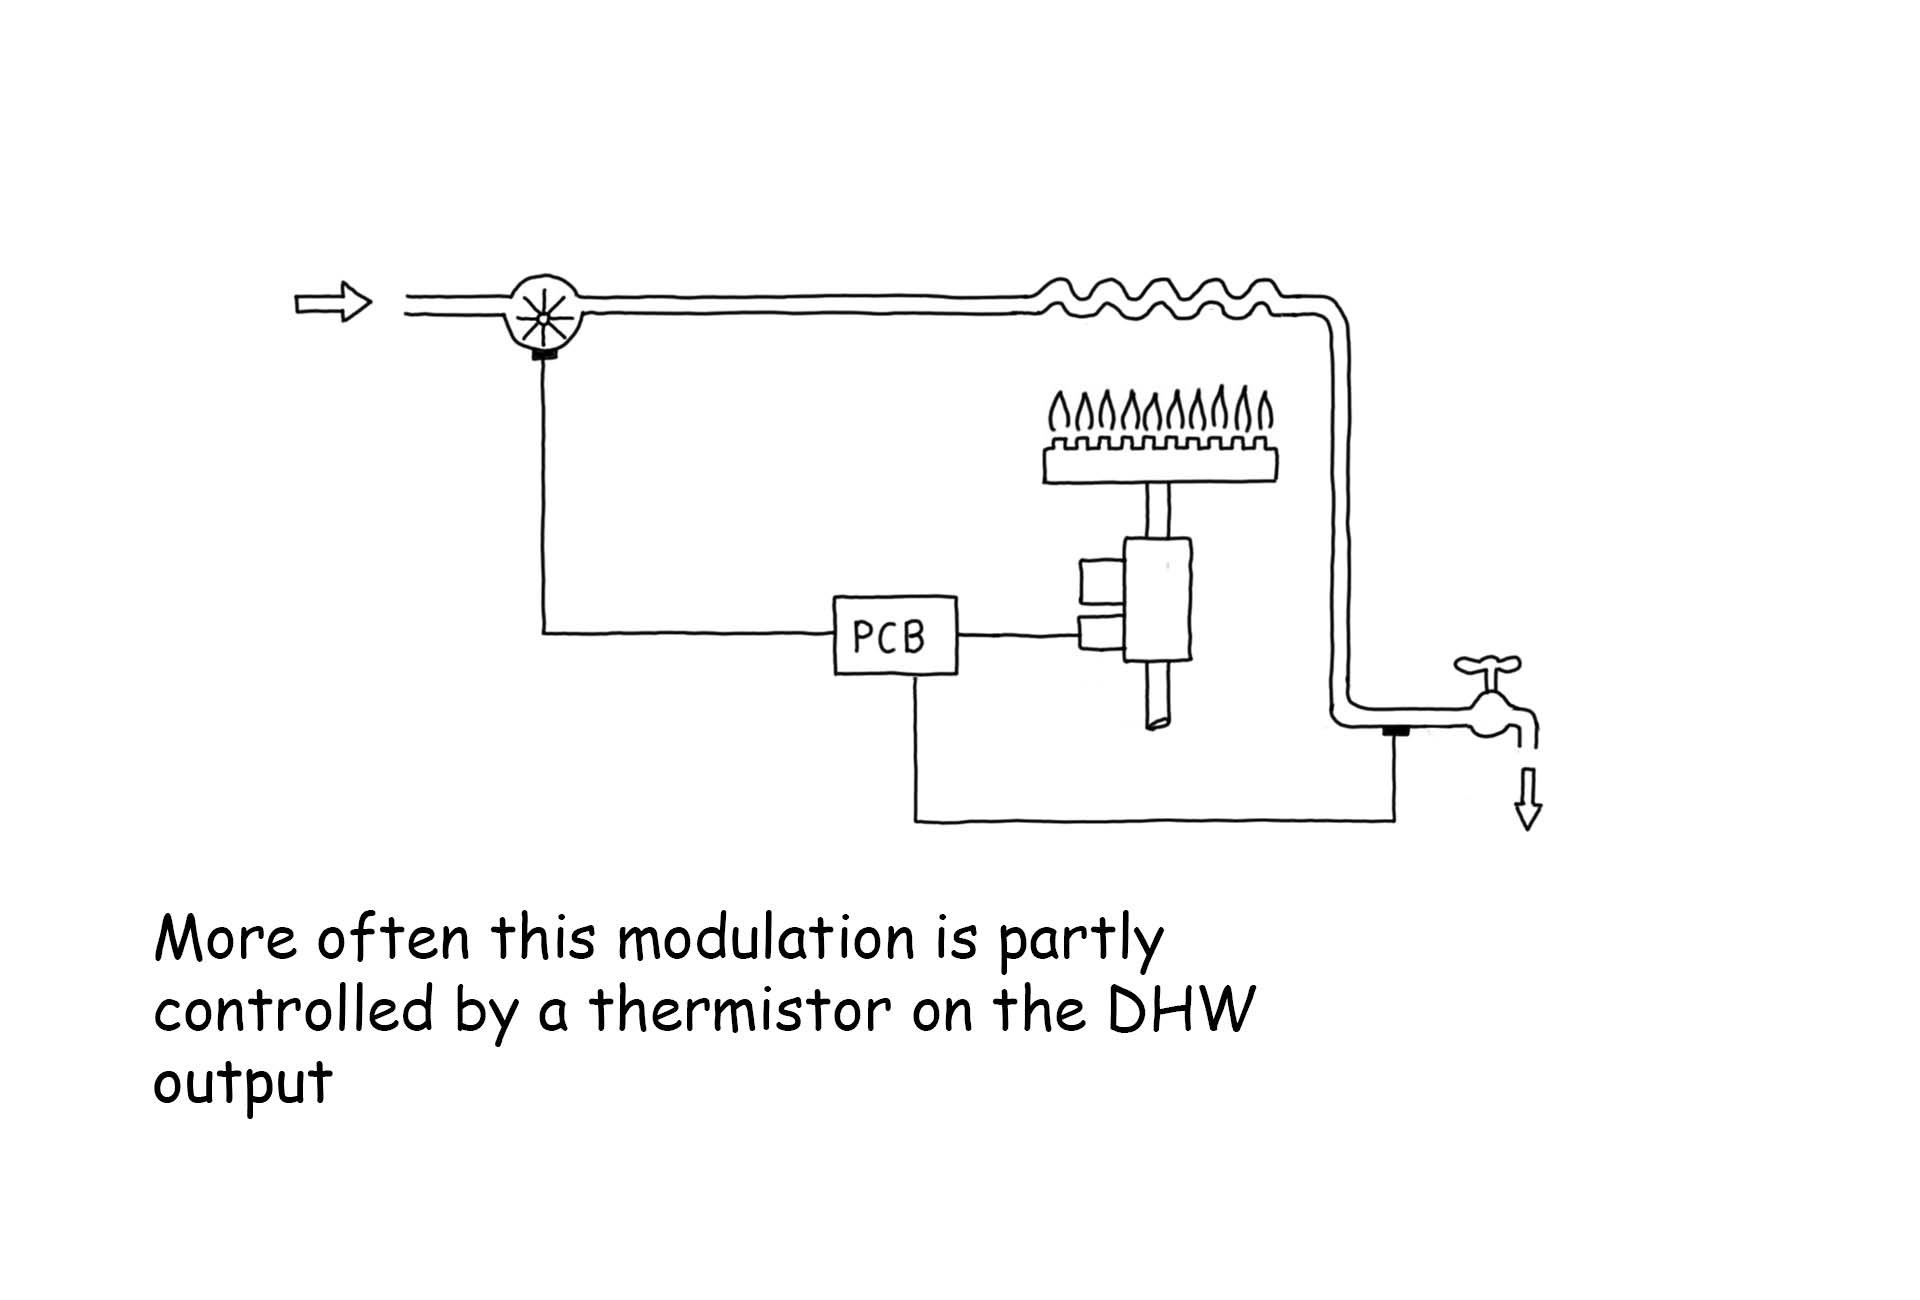 Flow Sensor Used Glow Worm 30 Cxi Thermistors Wiring In Parallel Diagram Showing Thermistor Control